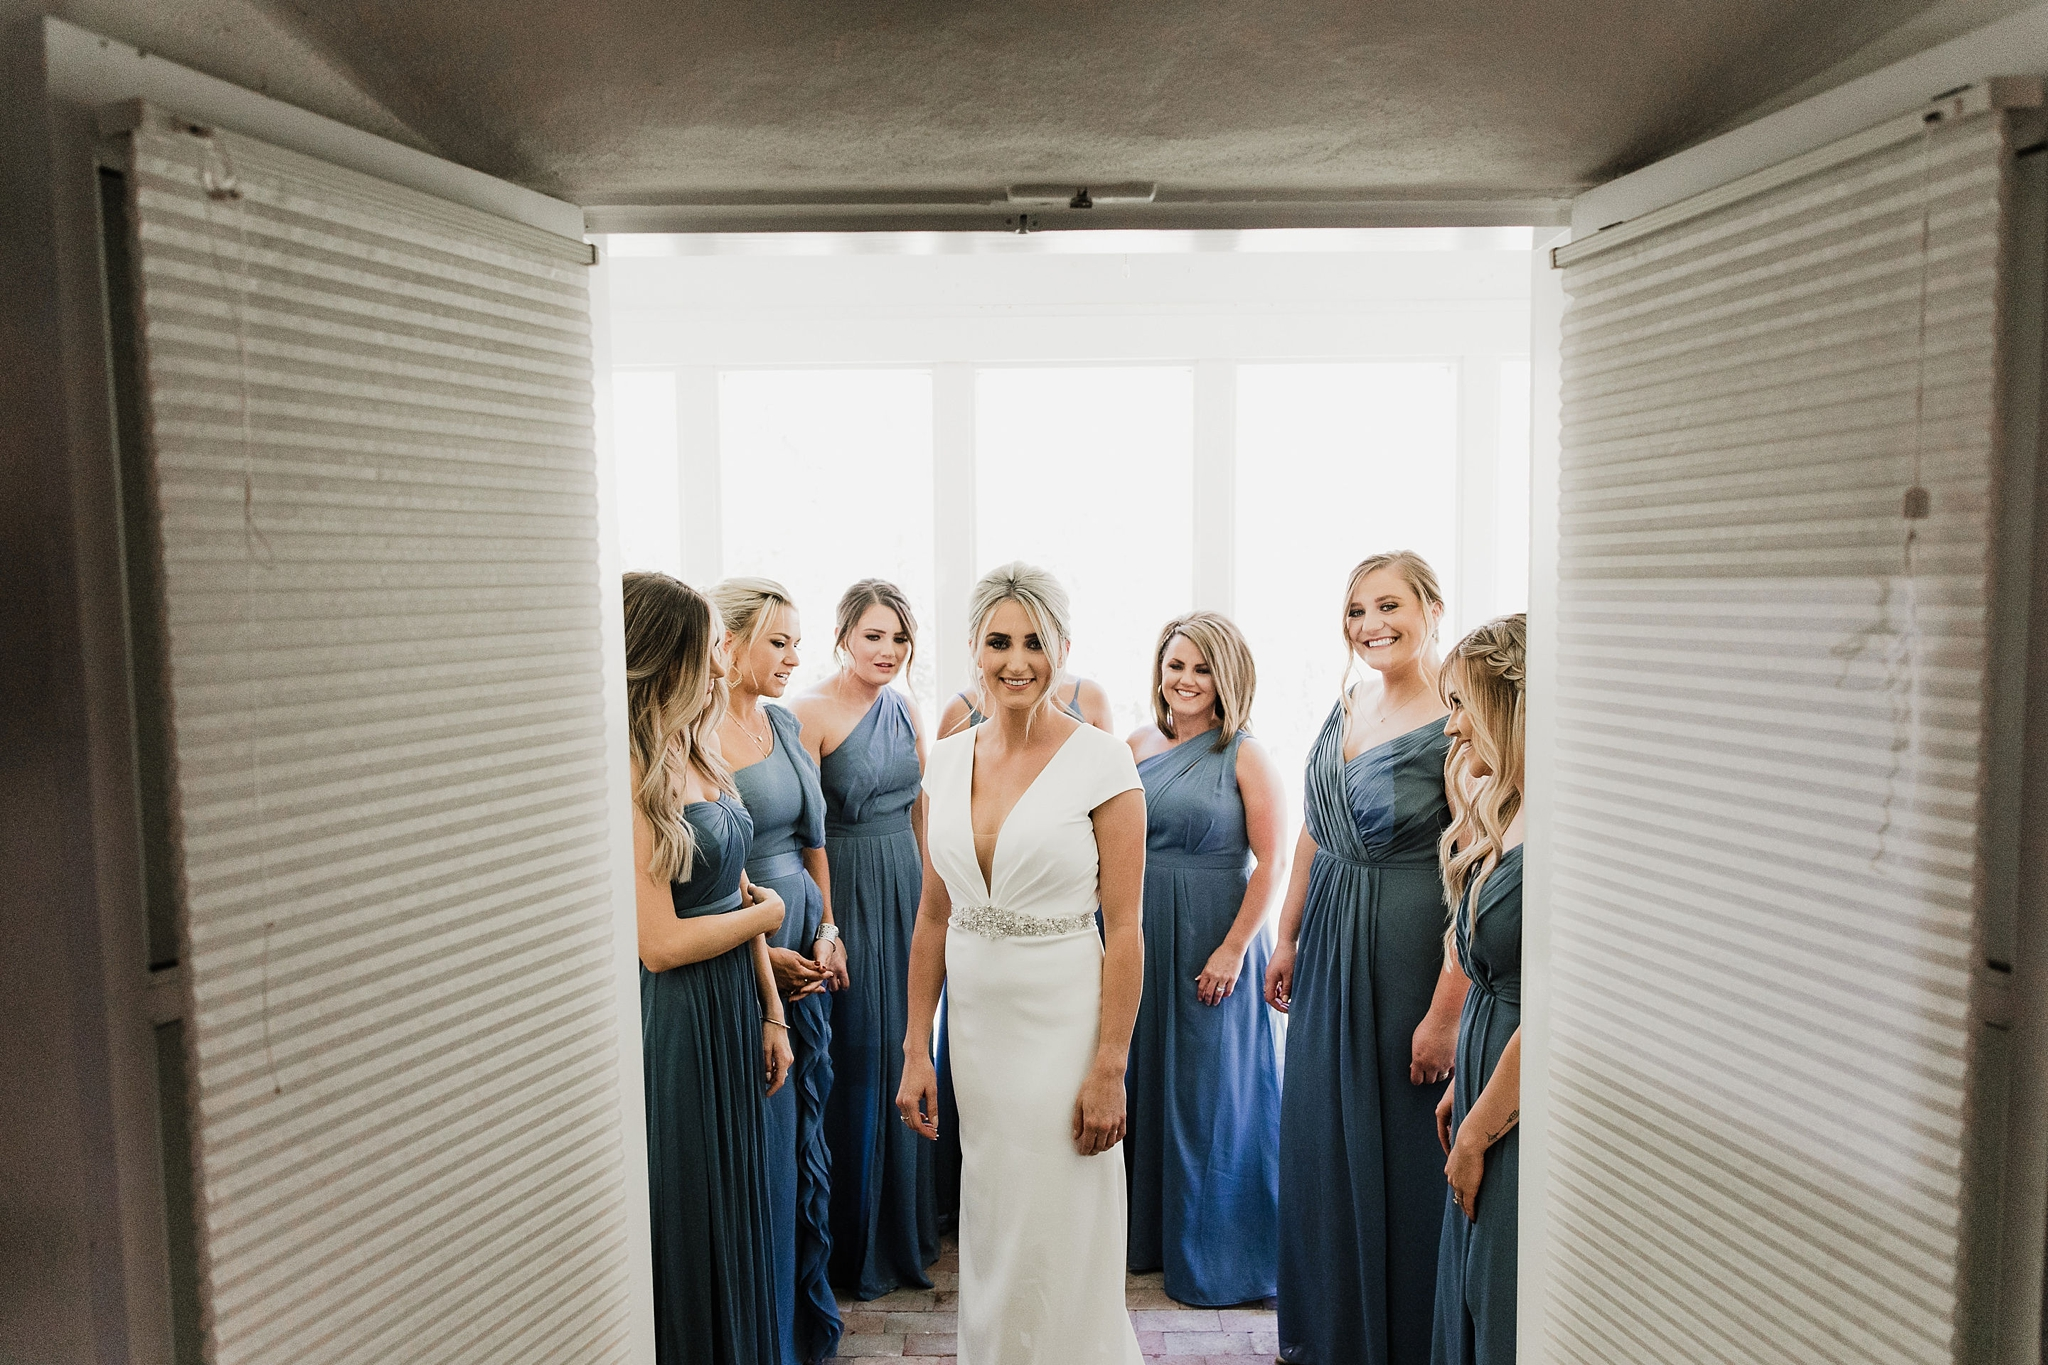 Alicia+lucia+photography+-+albuquerque+wedding+photographer+-+santa+fe+wedding+photography+-+new+mexico+wedding+photographer+-+new+mexico+wedding+-+new+mexico+wedding+-+colorado+wedding+-+bridesmaids+-+bridesmaid+style_0012.jpg